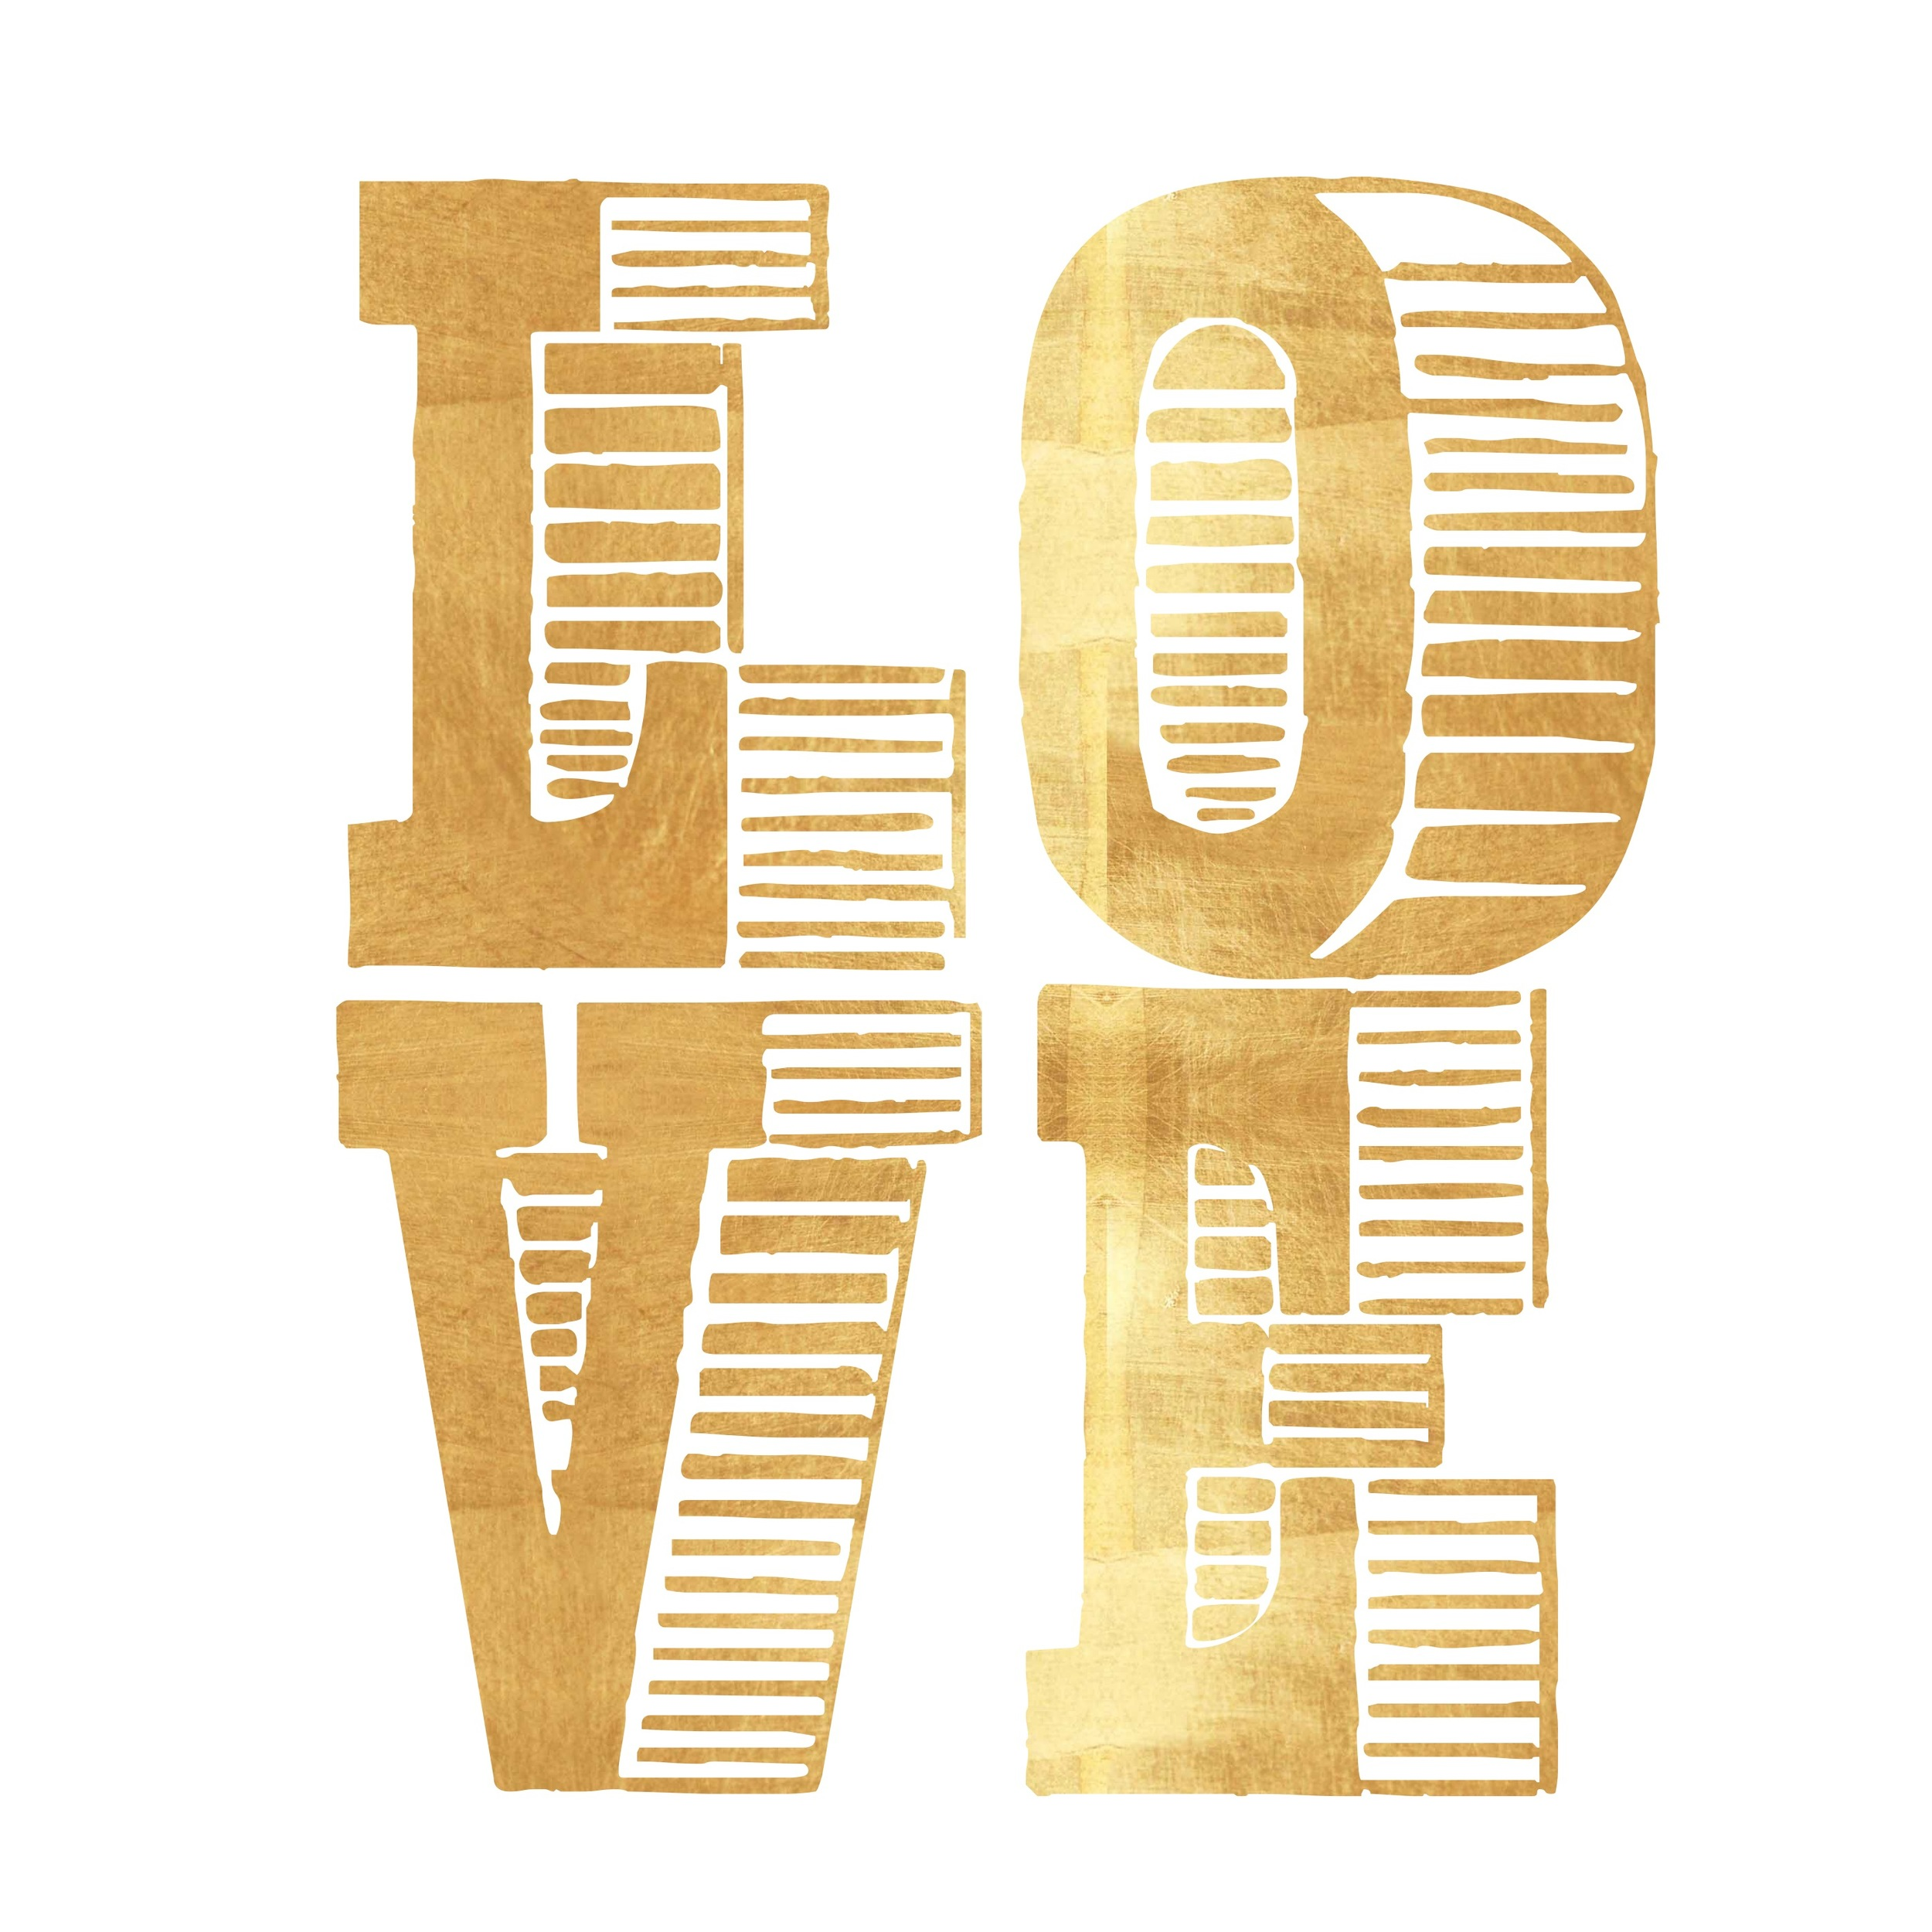 Love is a four letter word, ranking the same status as over four letter words. Time for some LOVE improvements. Head over to www.meetwithtisa.com for LOVE tips.